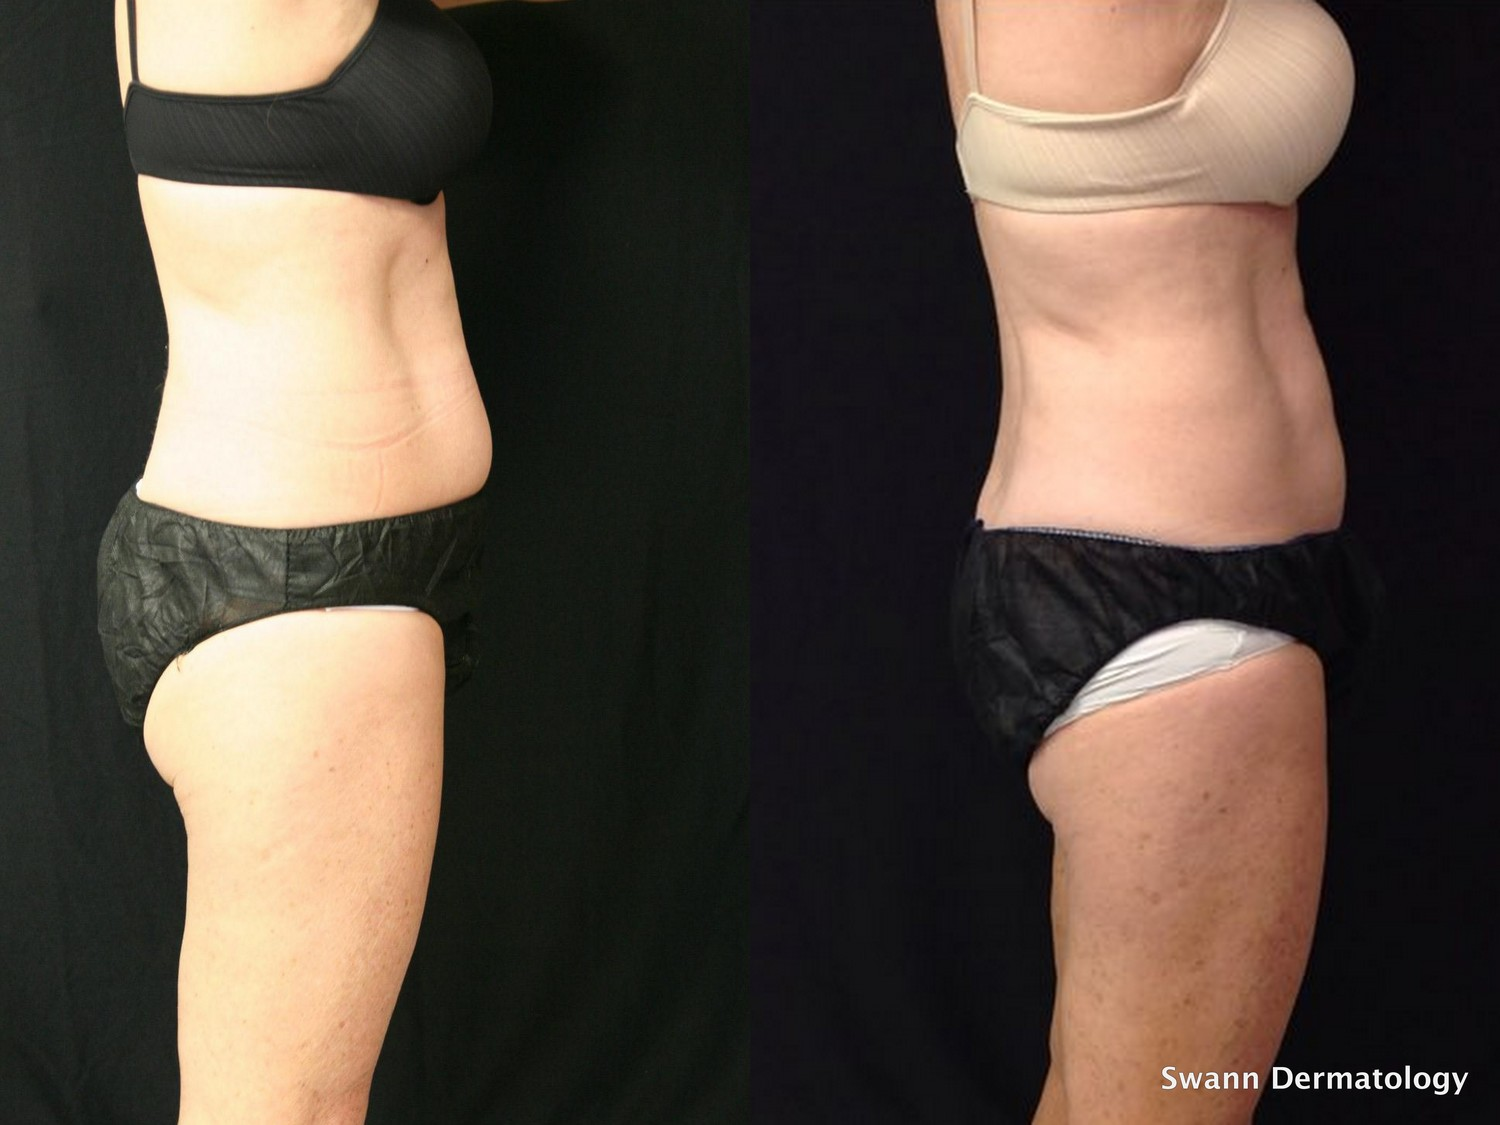 2 Coolsculpting sessions of lower abdomen only